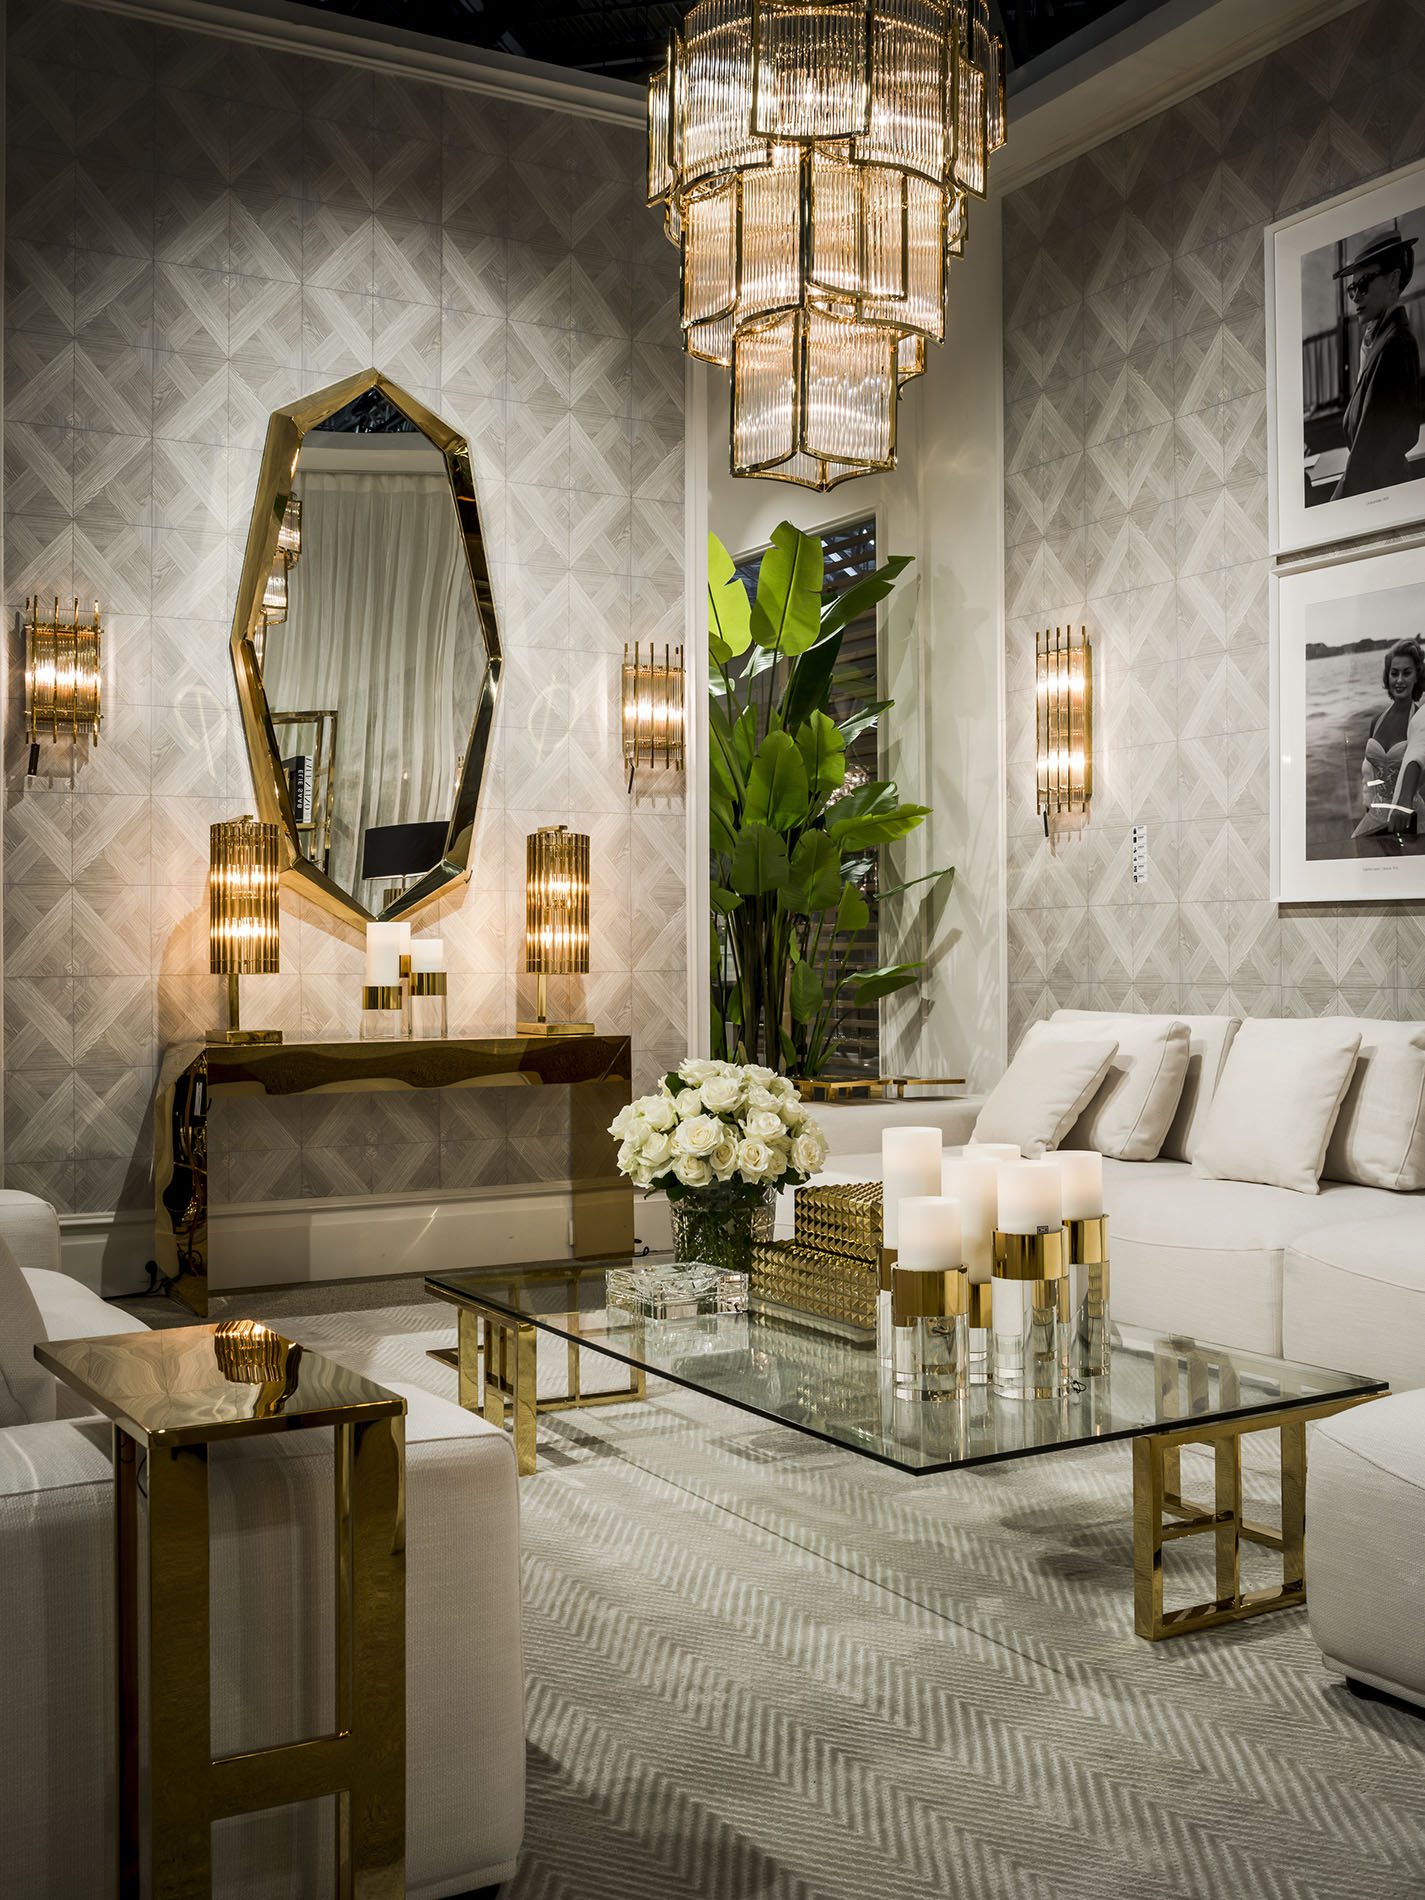 mirror luxury gold with modern extreme gold coffee table in the middle and white comfy sofa with cushions, aspros kanapes xamilos xekourastos, elegant xriso monterno trapezaki me konsola,